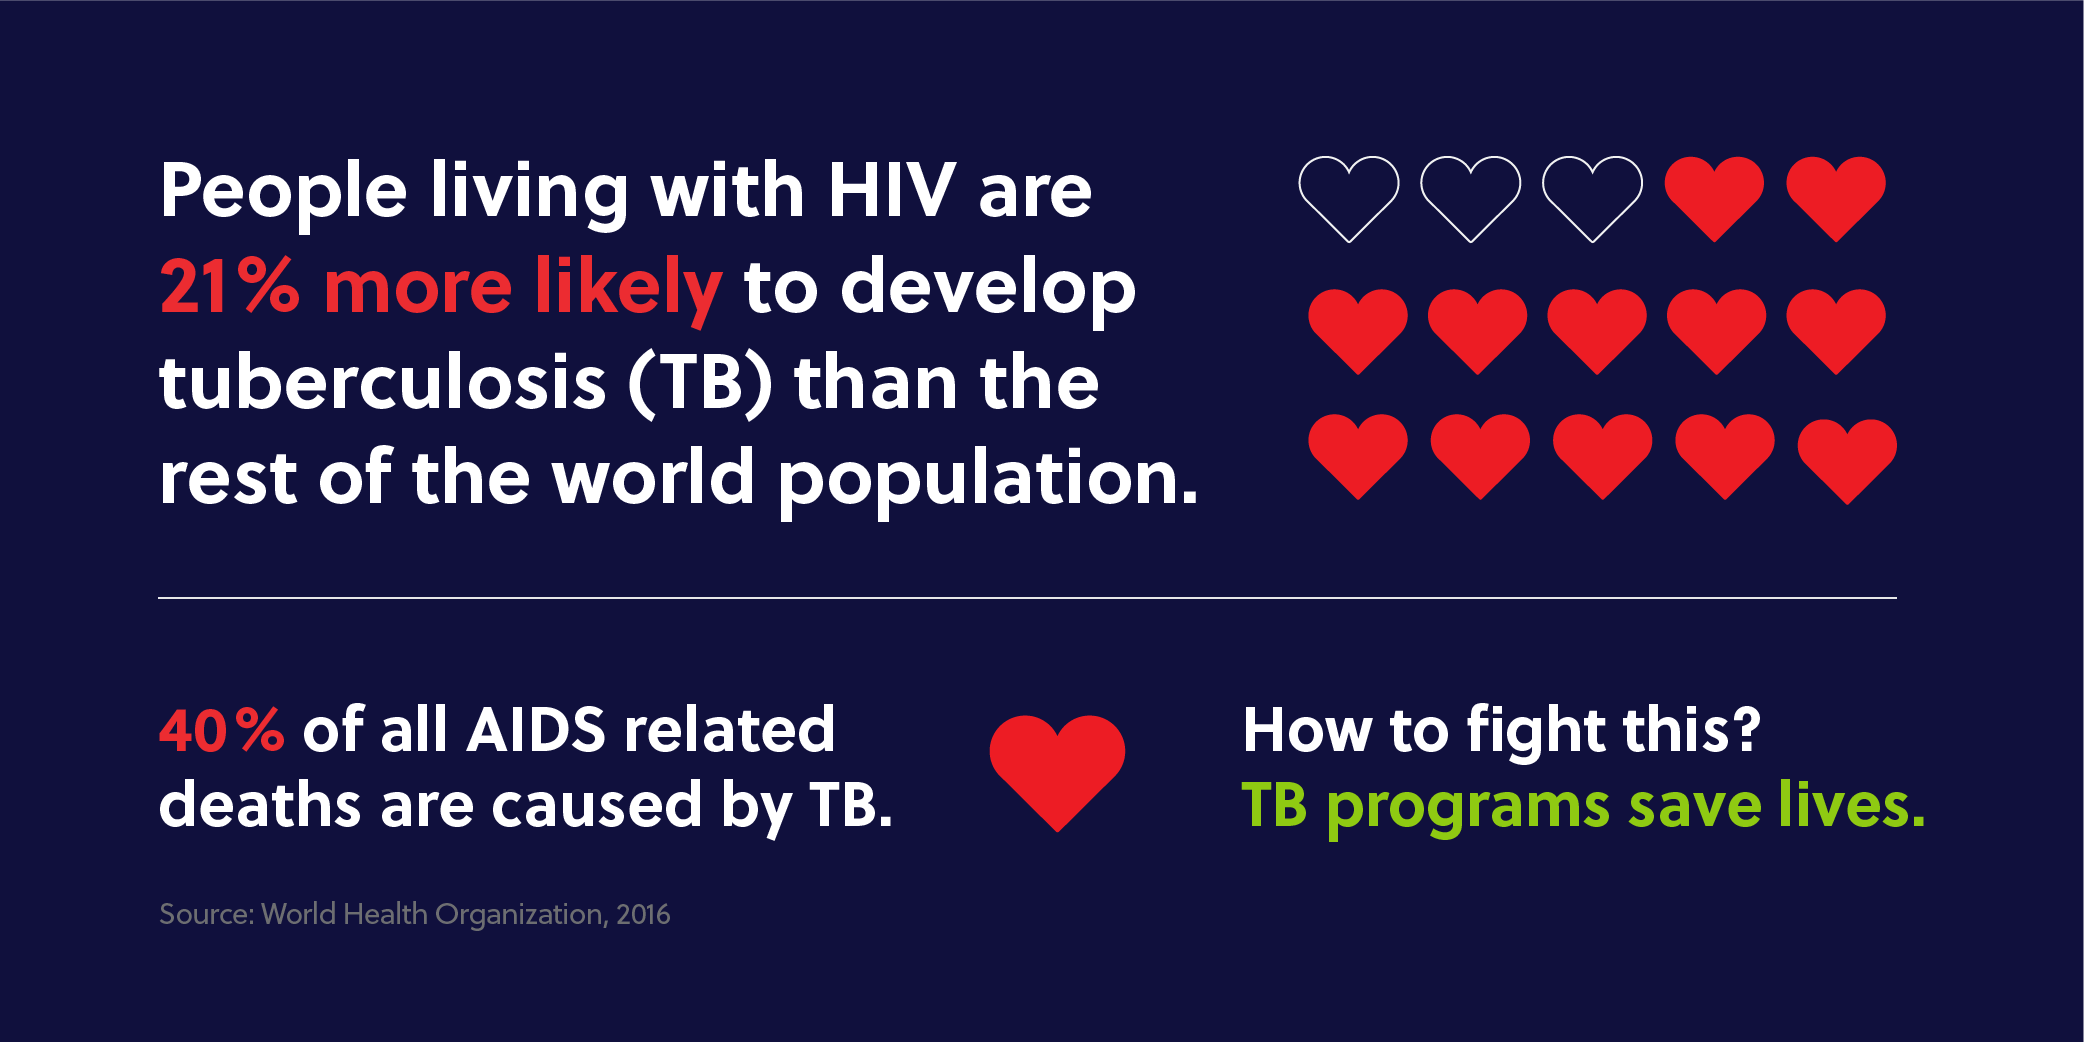 People living with HIV are 21% more likely to develop tuberculosis (TB) than the rest of the population. 40% of all AIDS related deaths are caused by TB. How to fight this? TB programs save lives.